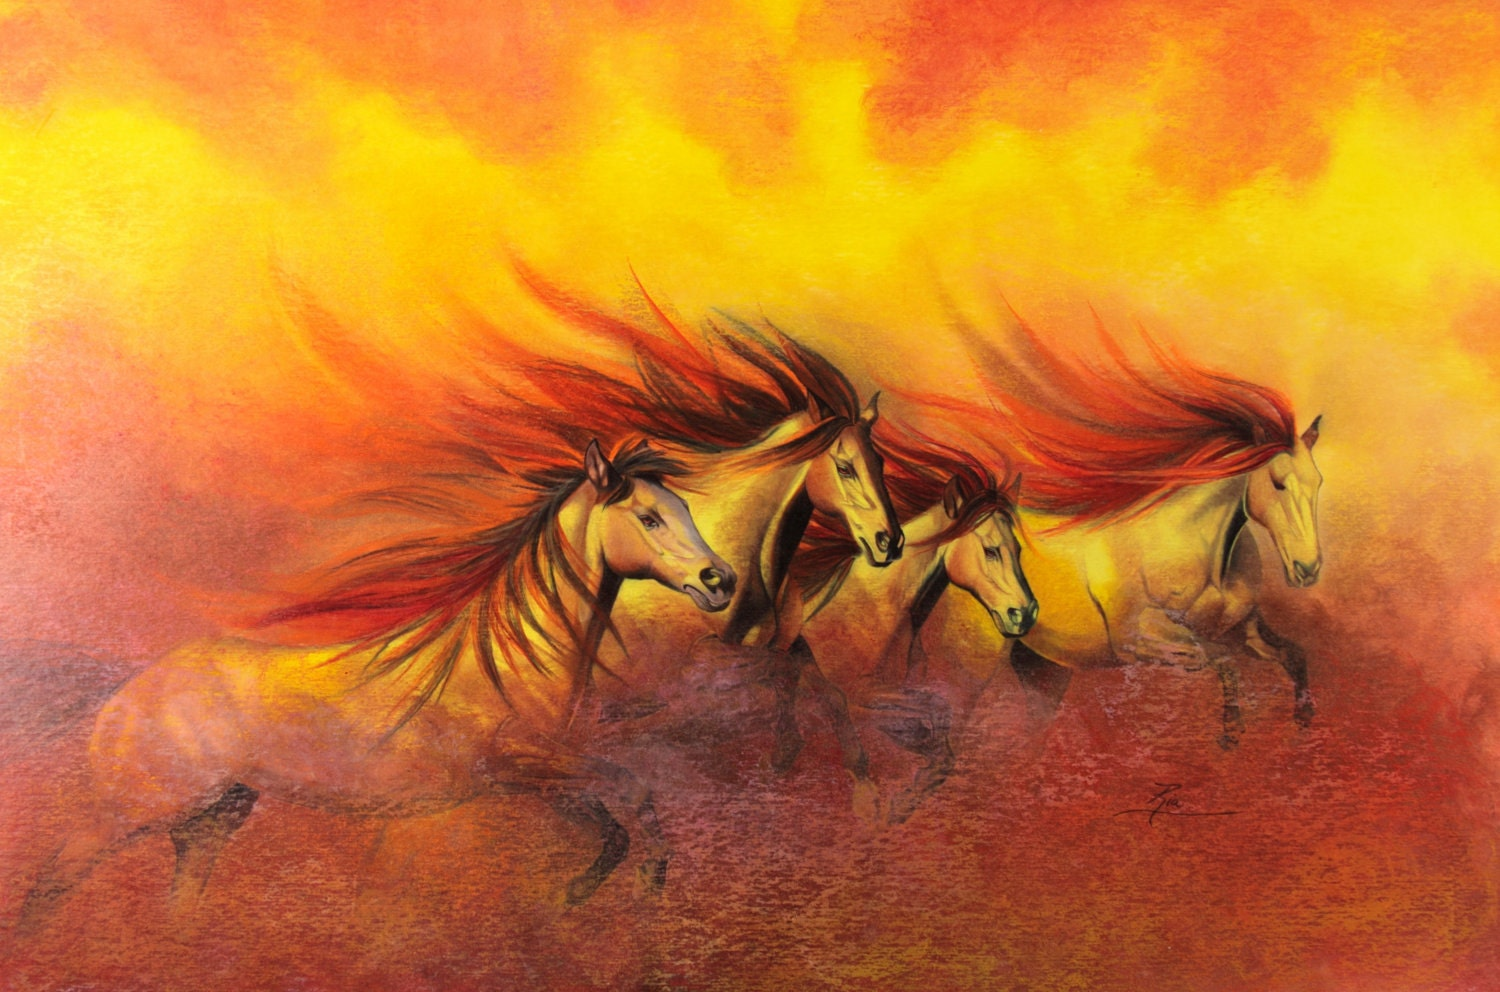 prismacolor art print of fire horses 10x7. Black Bedroom Furniture Sets. Home Design Ideas